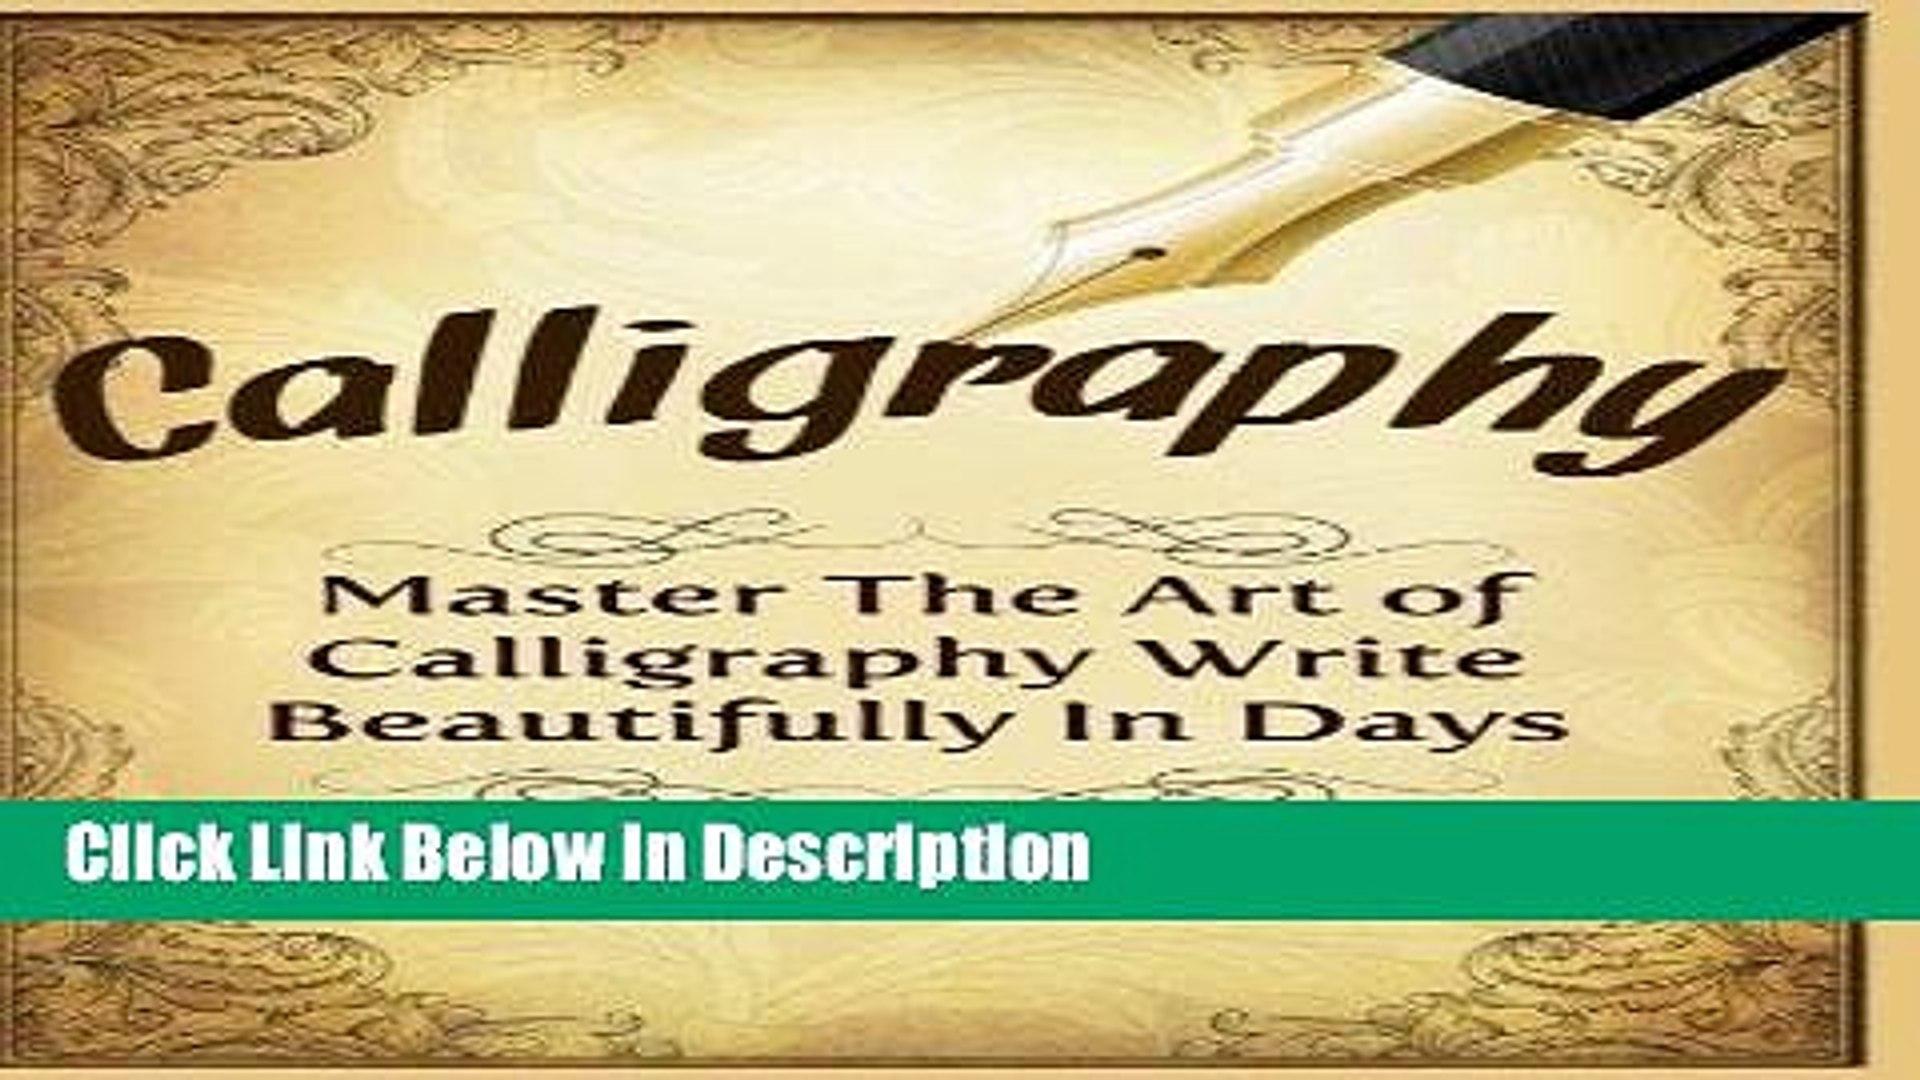 PDF Calligraphy: Master The Art Of Calligraphy - Write Beautifully In Days Audiobook Online free